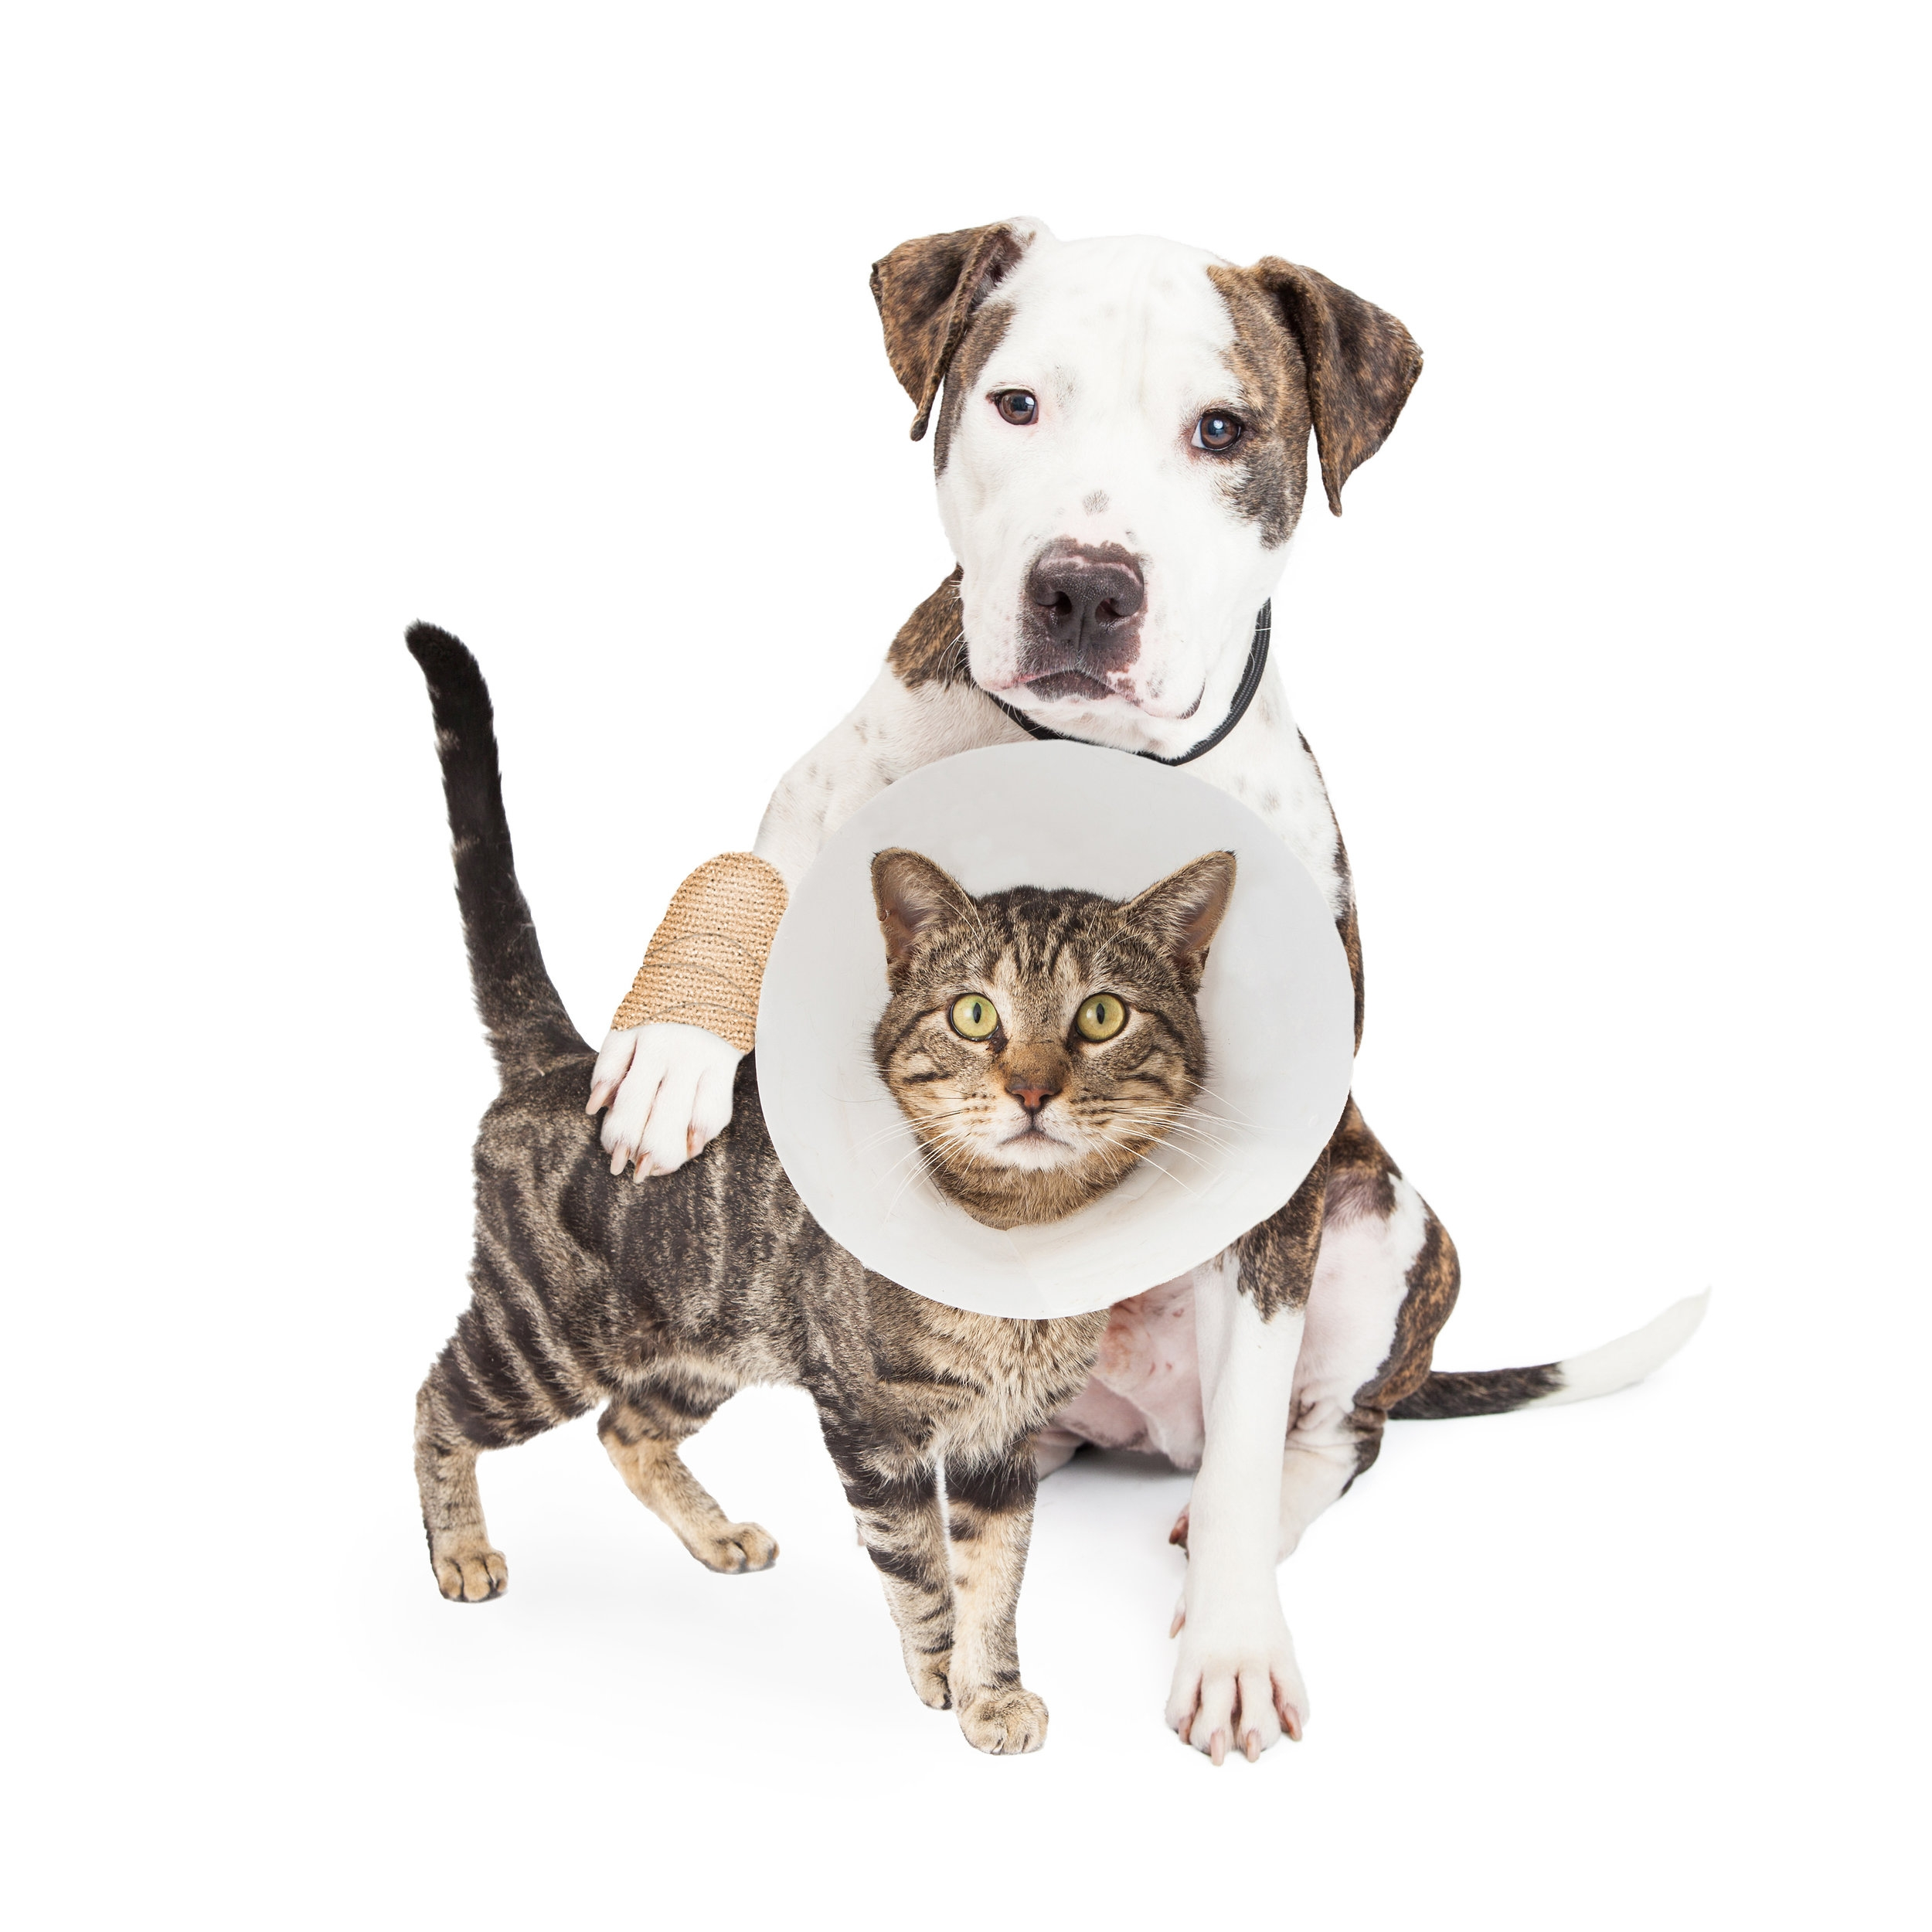 SPAY + NEUTER CLINICS - AnimalKind was founded to build no-kill communities. Controlling the birthrate of unplanned cats and dogs is the single most important component in accomplishing this mission.